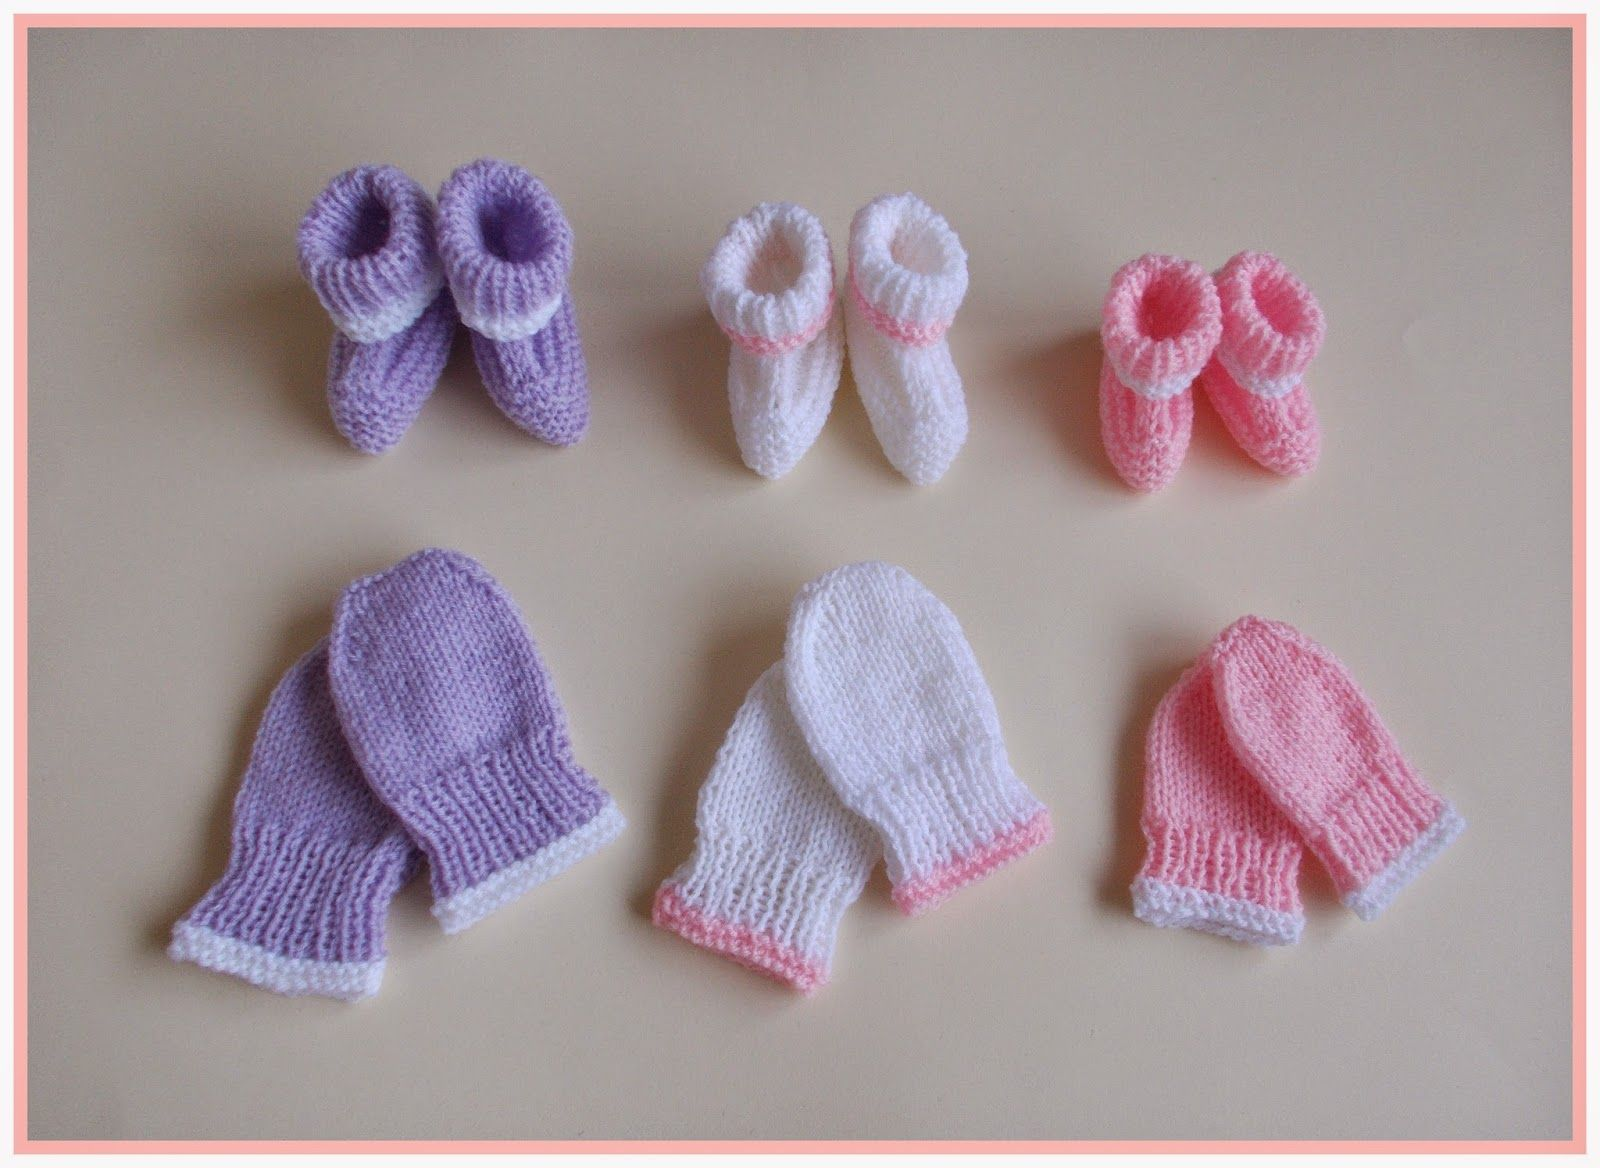 Mariannas lazy daisy days premature newborn baby hat mittens premature babies are delicate i like to knit for them using finer yarns i use a lot of dk yarn but i wanted to mak bankloansurffo Gallery